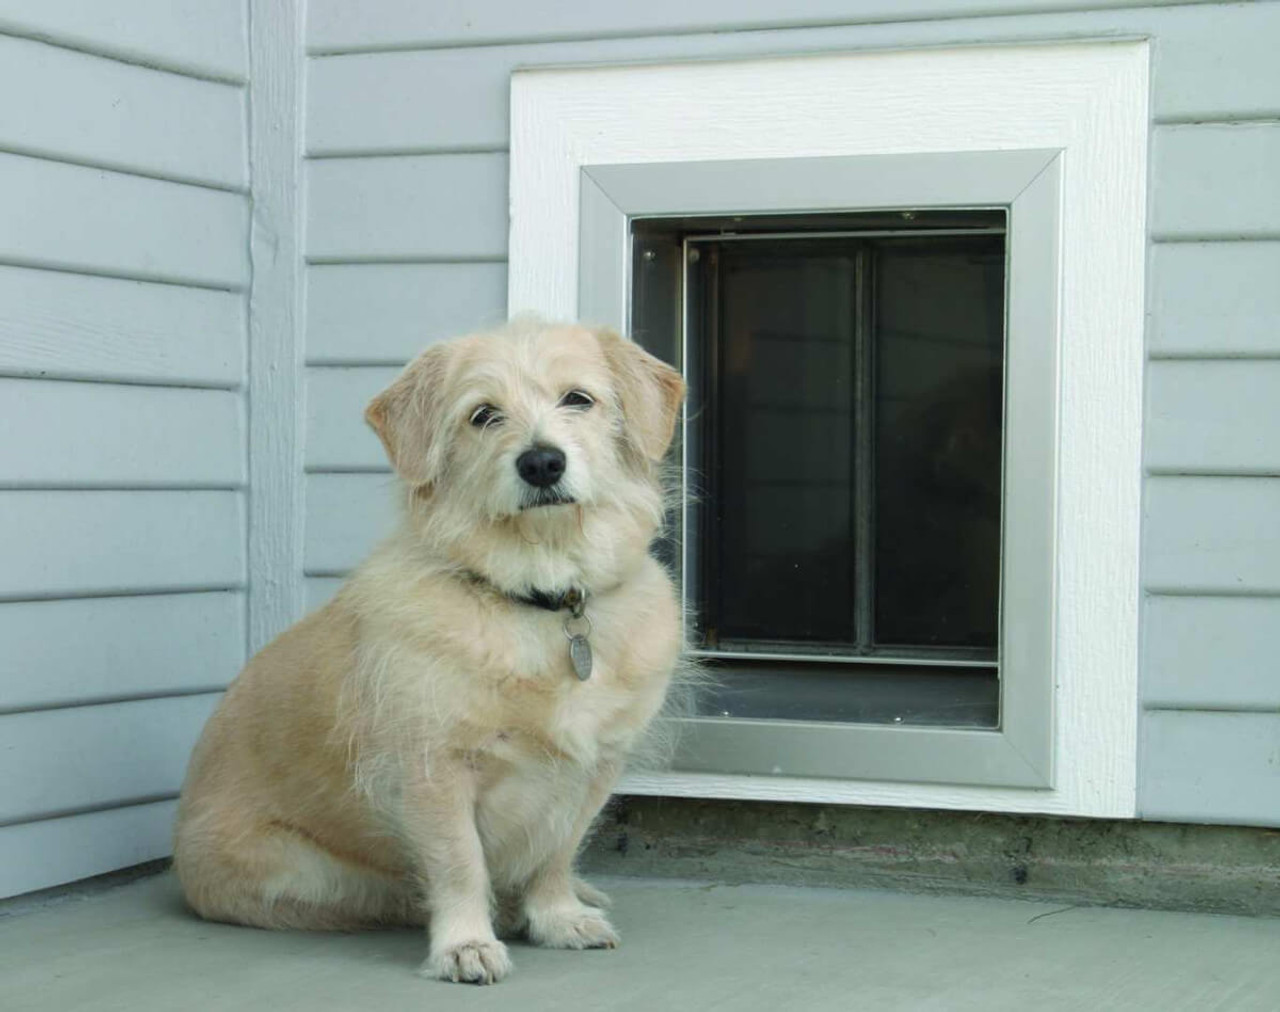 PlexiDor Wall pet doors have a keyed lock to prevent the flaps from opening